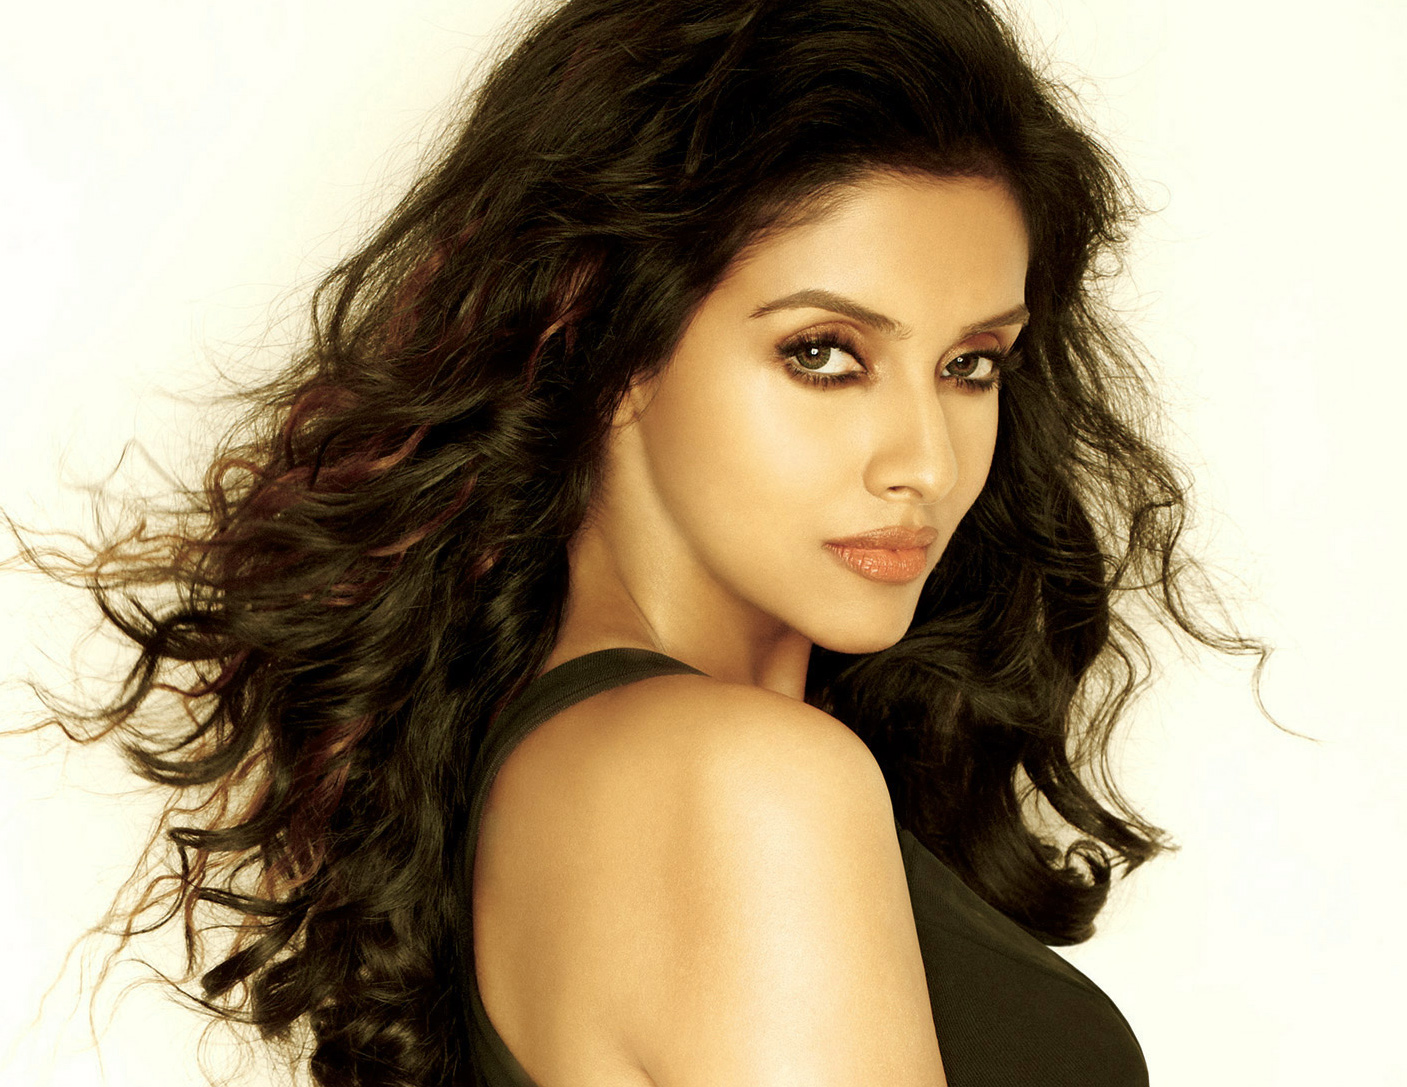 Very Beatiful Asin images Wallpaper Pics Download